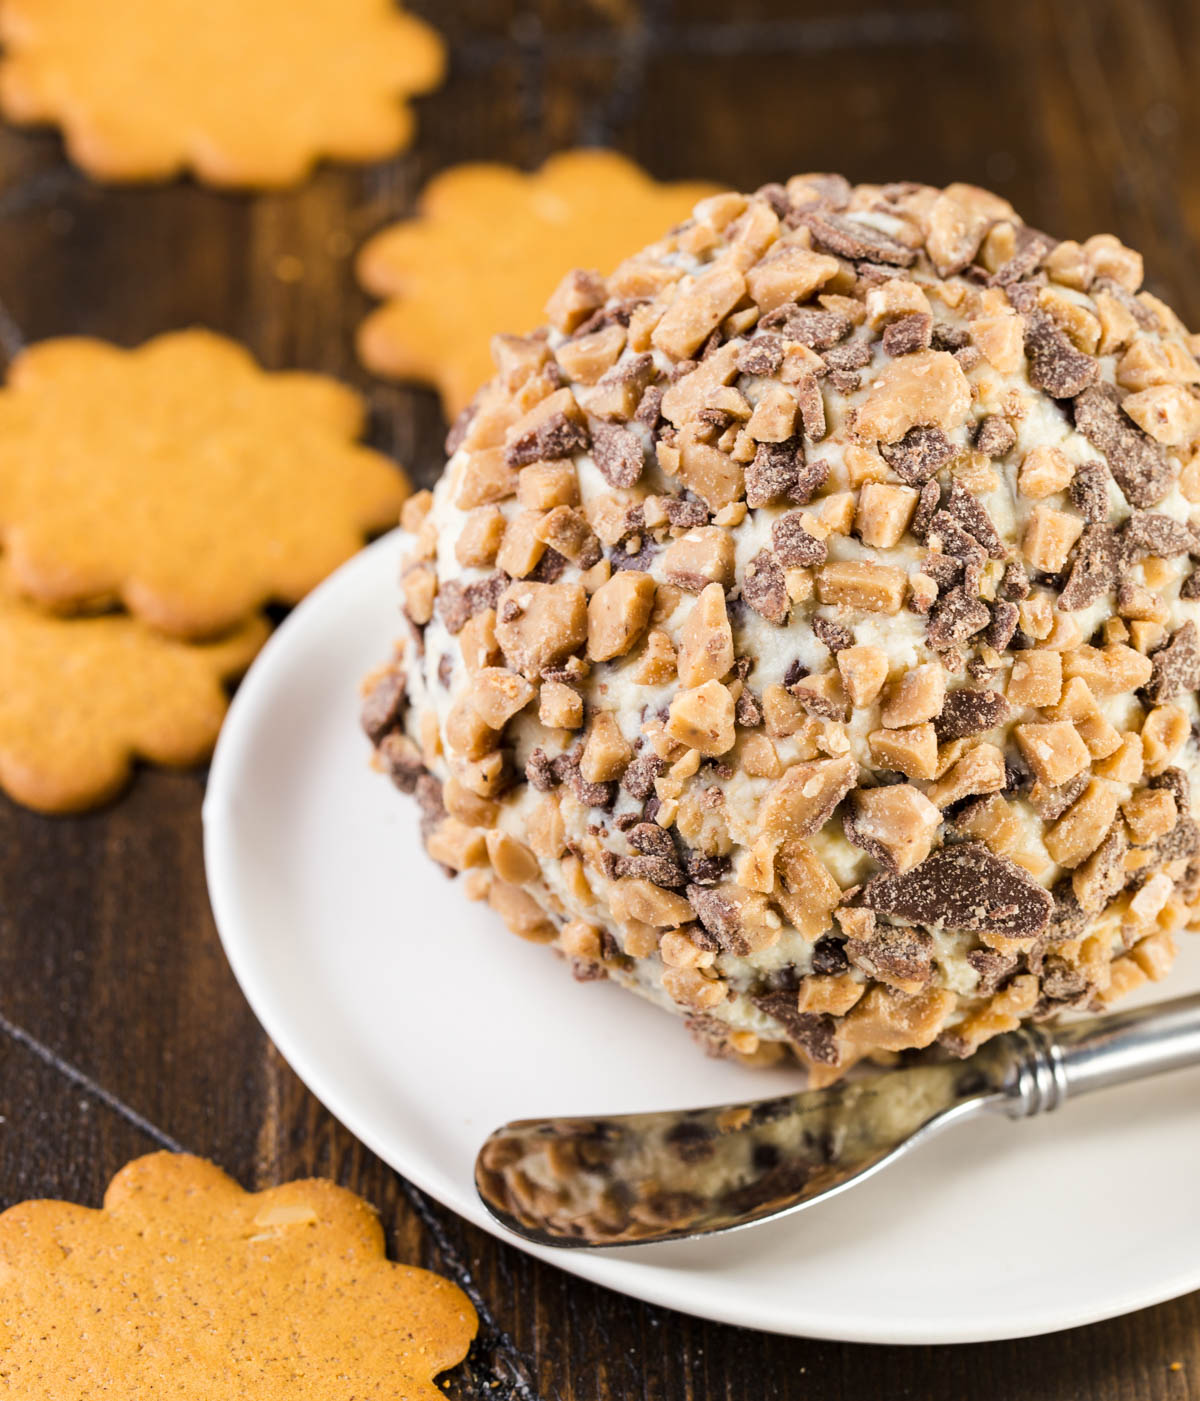 Easy and delicious, this Chocolate Chip Cheese Ball is one recipe you ...